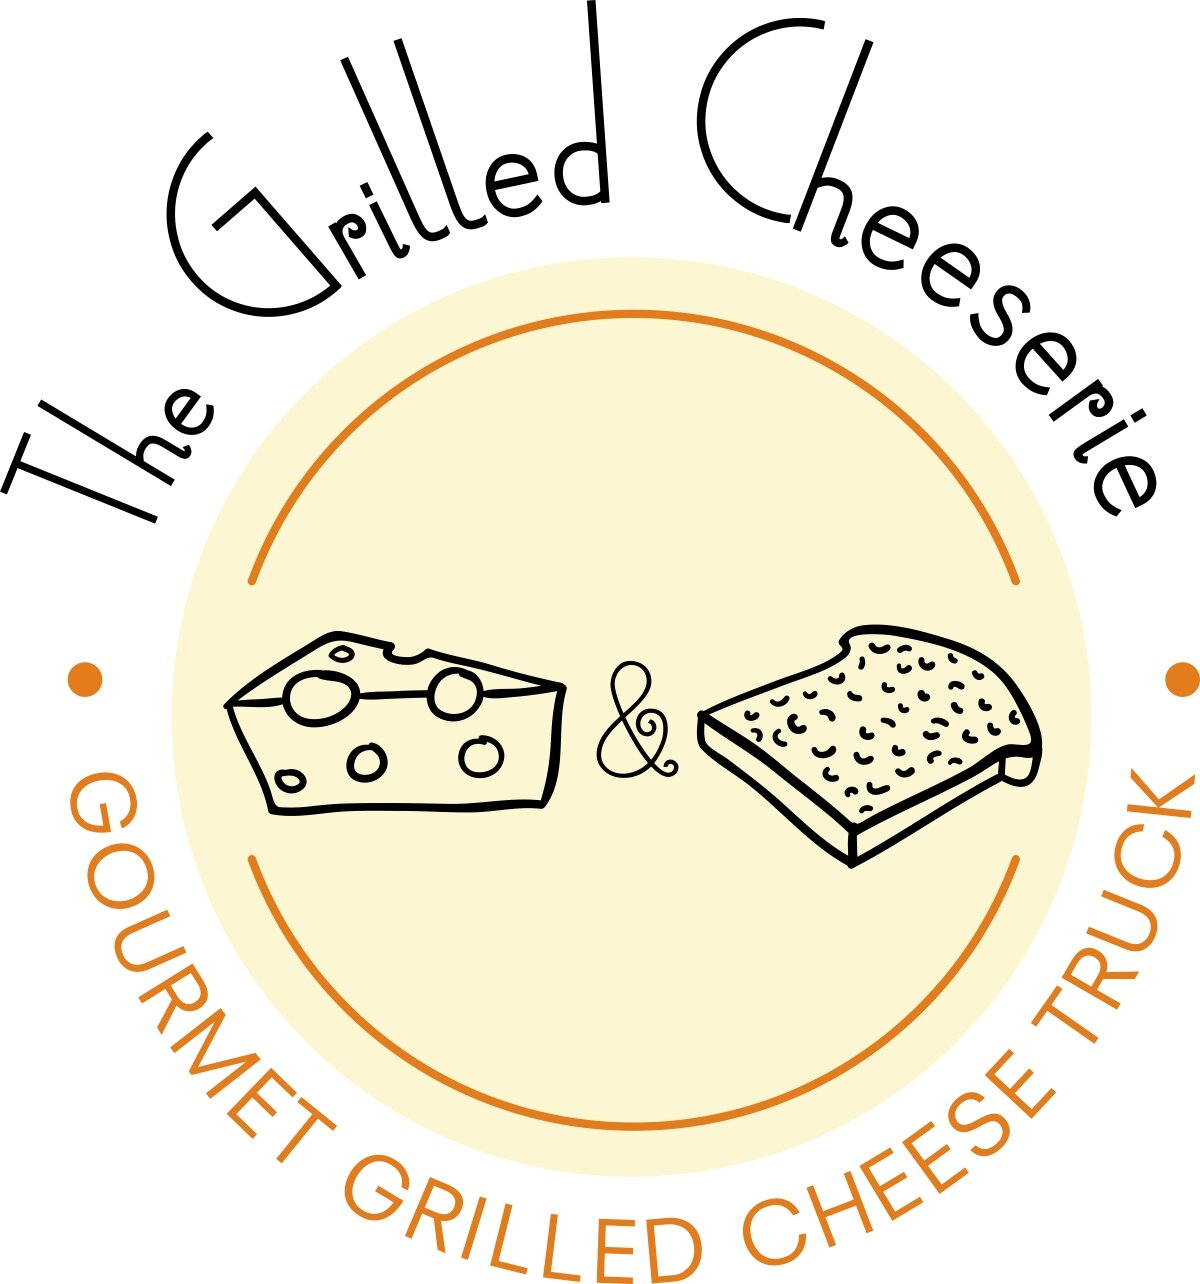 The Grilled Cheeserie.jpg